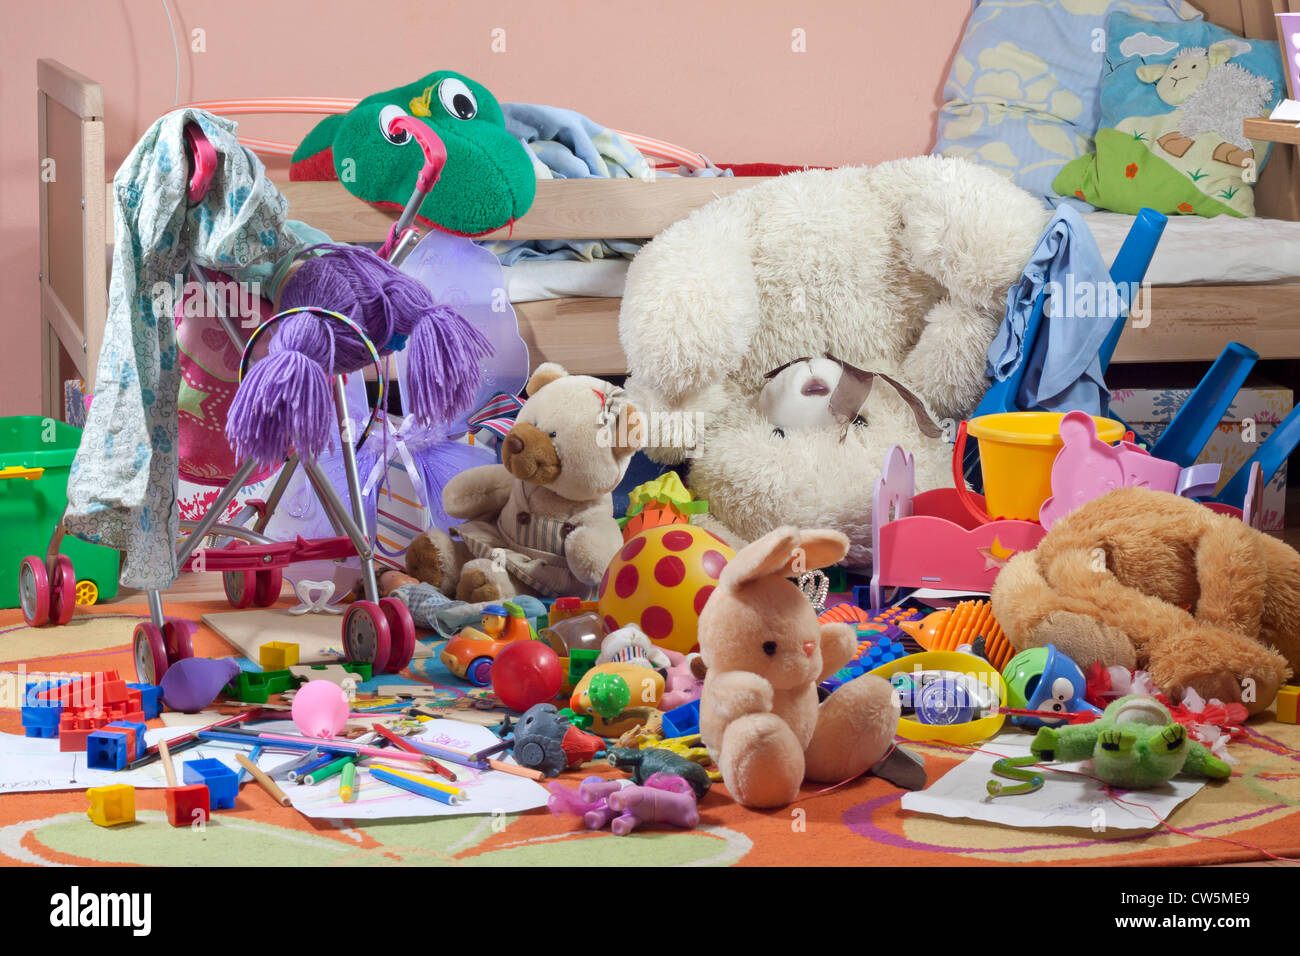 Messy Kids Room With Toys And Other Accessories